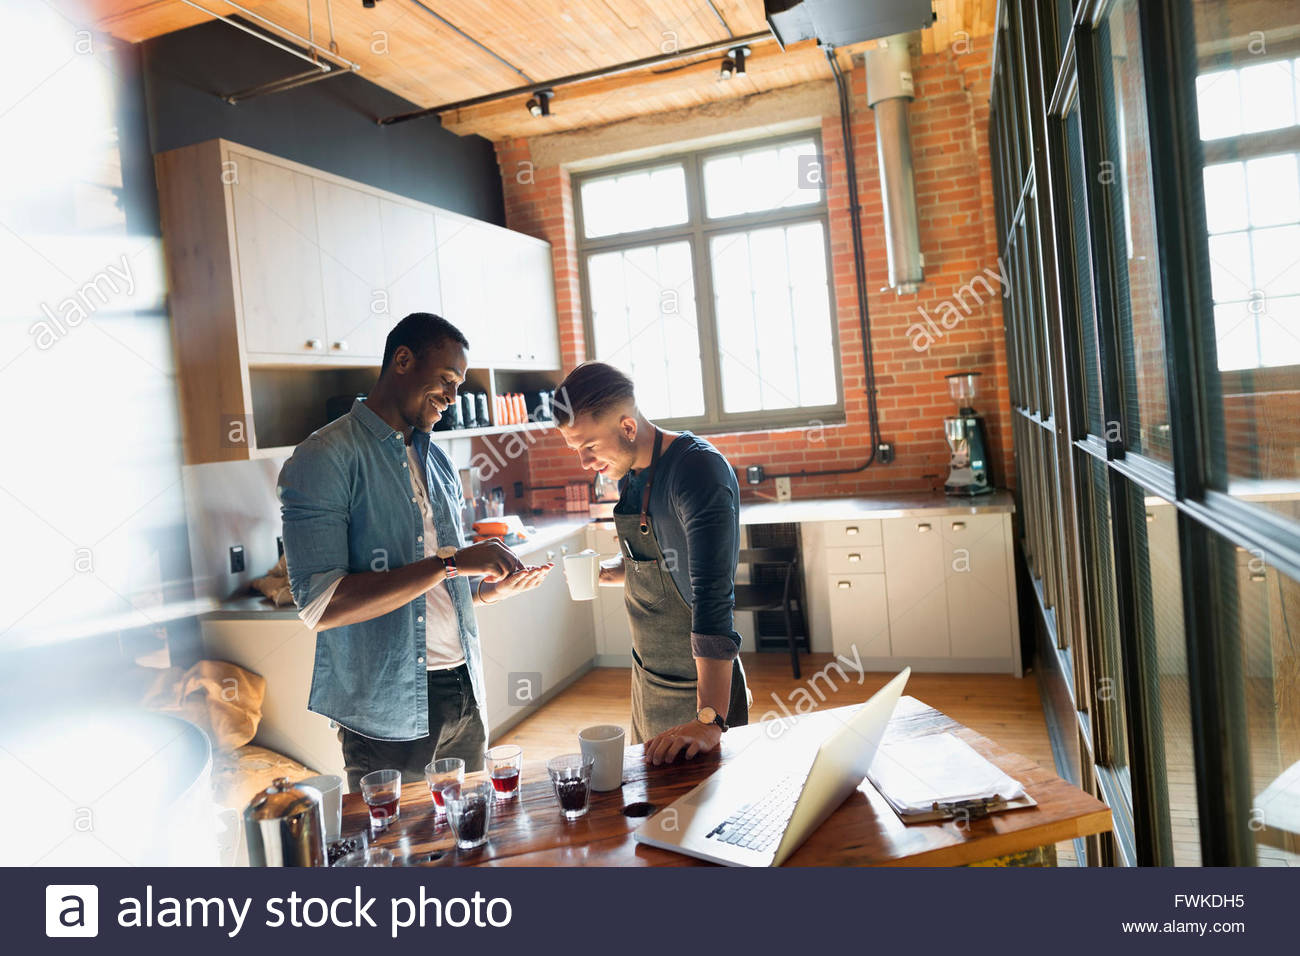 Entrepreneurial coffee roasters examining coffee beans in kitchen - Stock Image